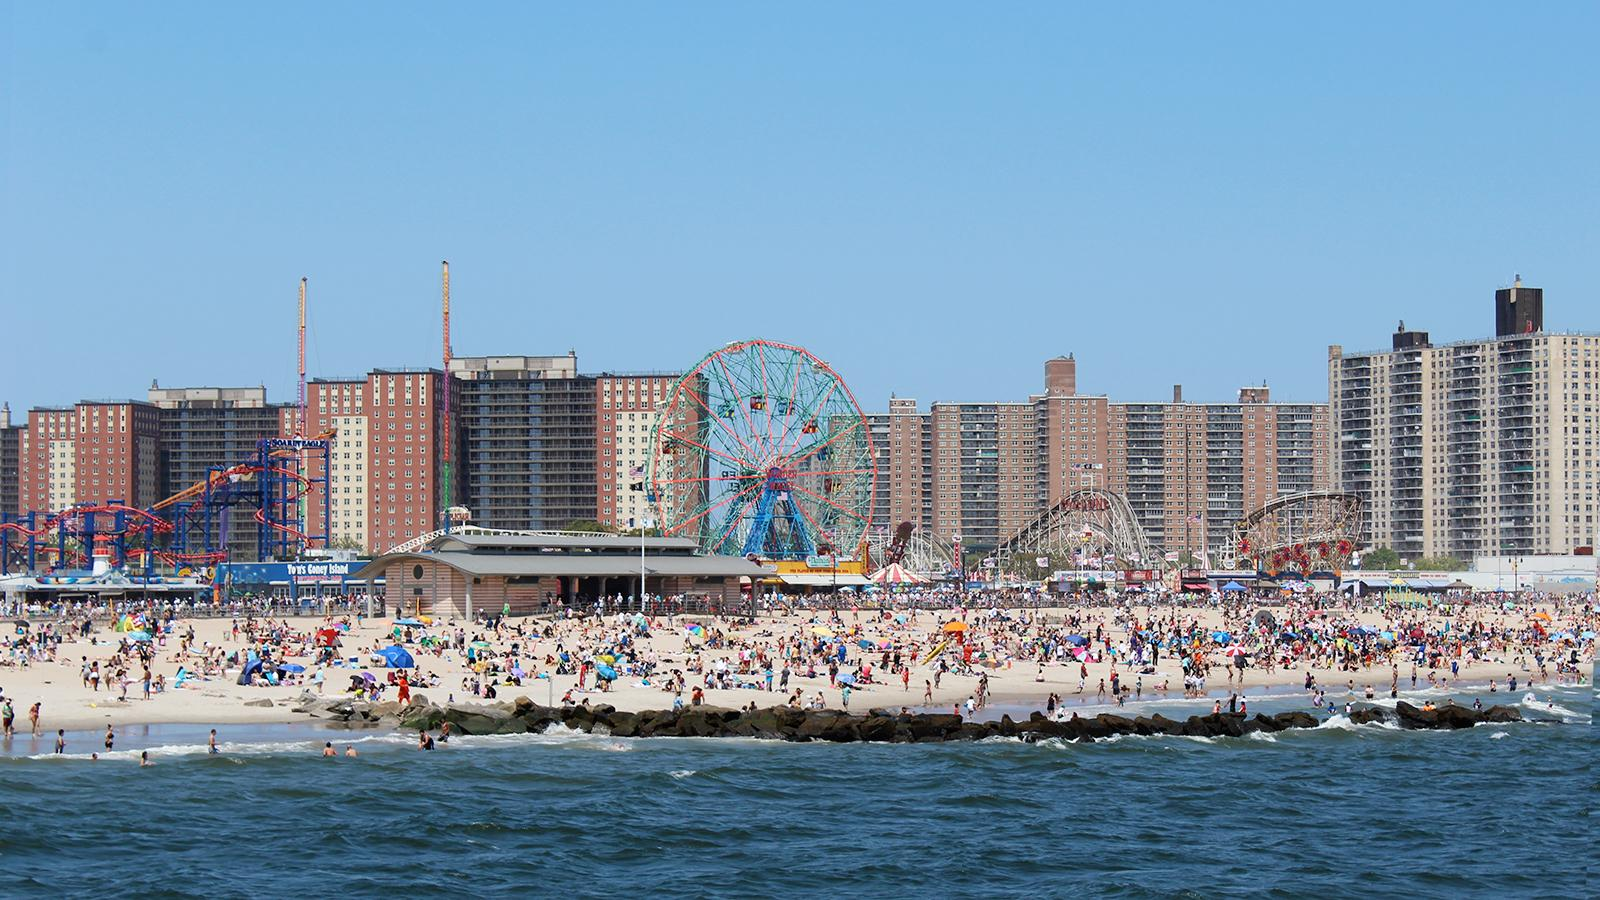 Mixed Case does not condone drinking wine before riding Coney Island's famous Cyclone rollercoaster.